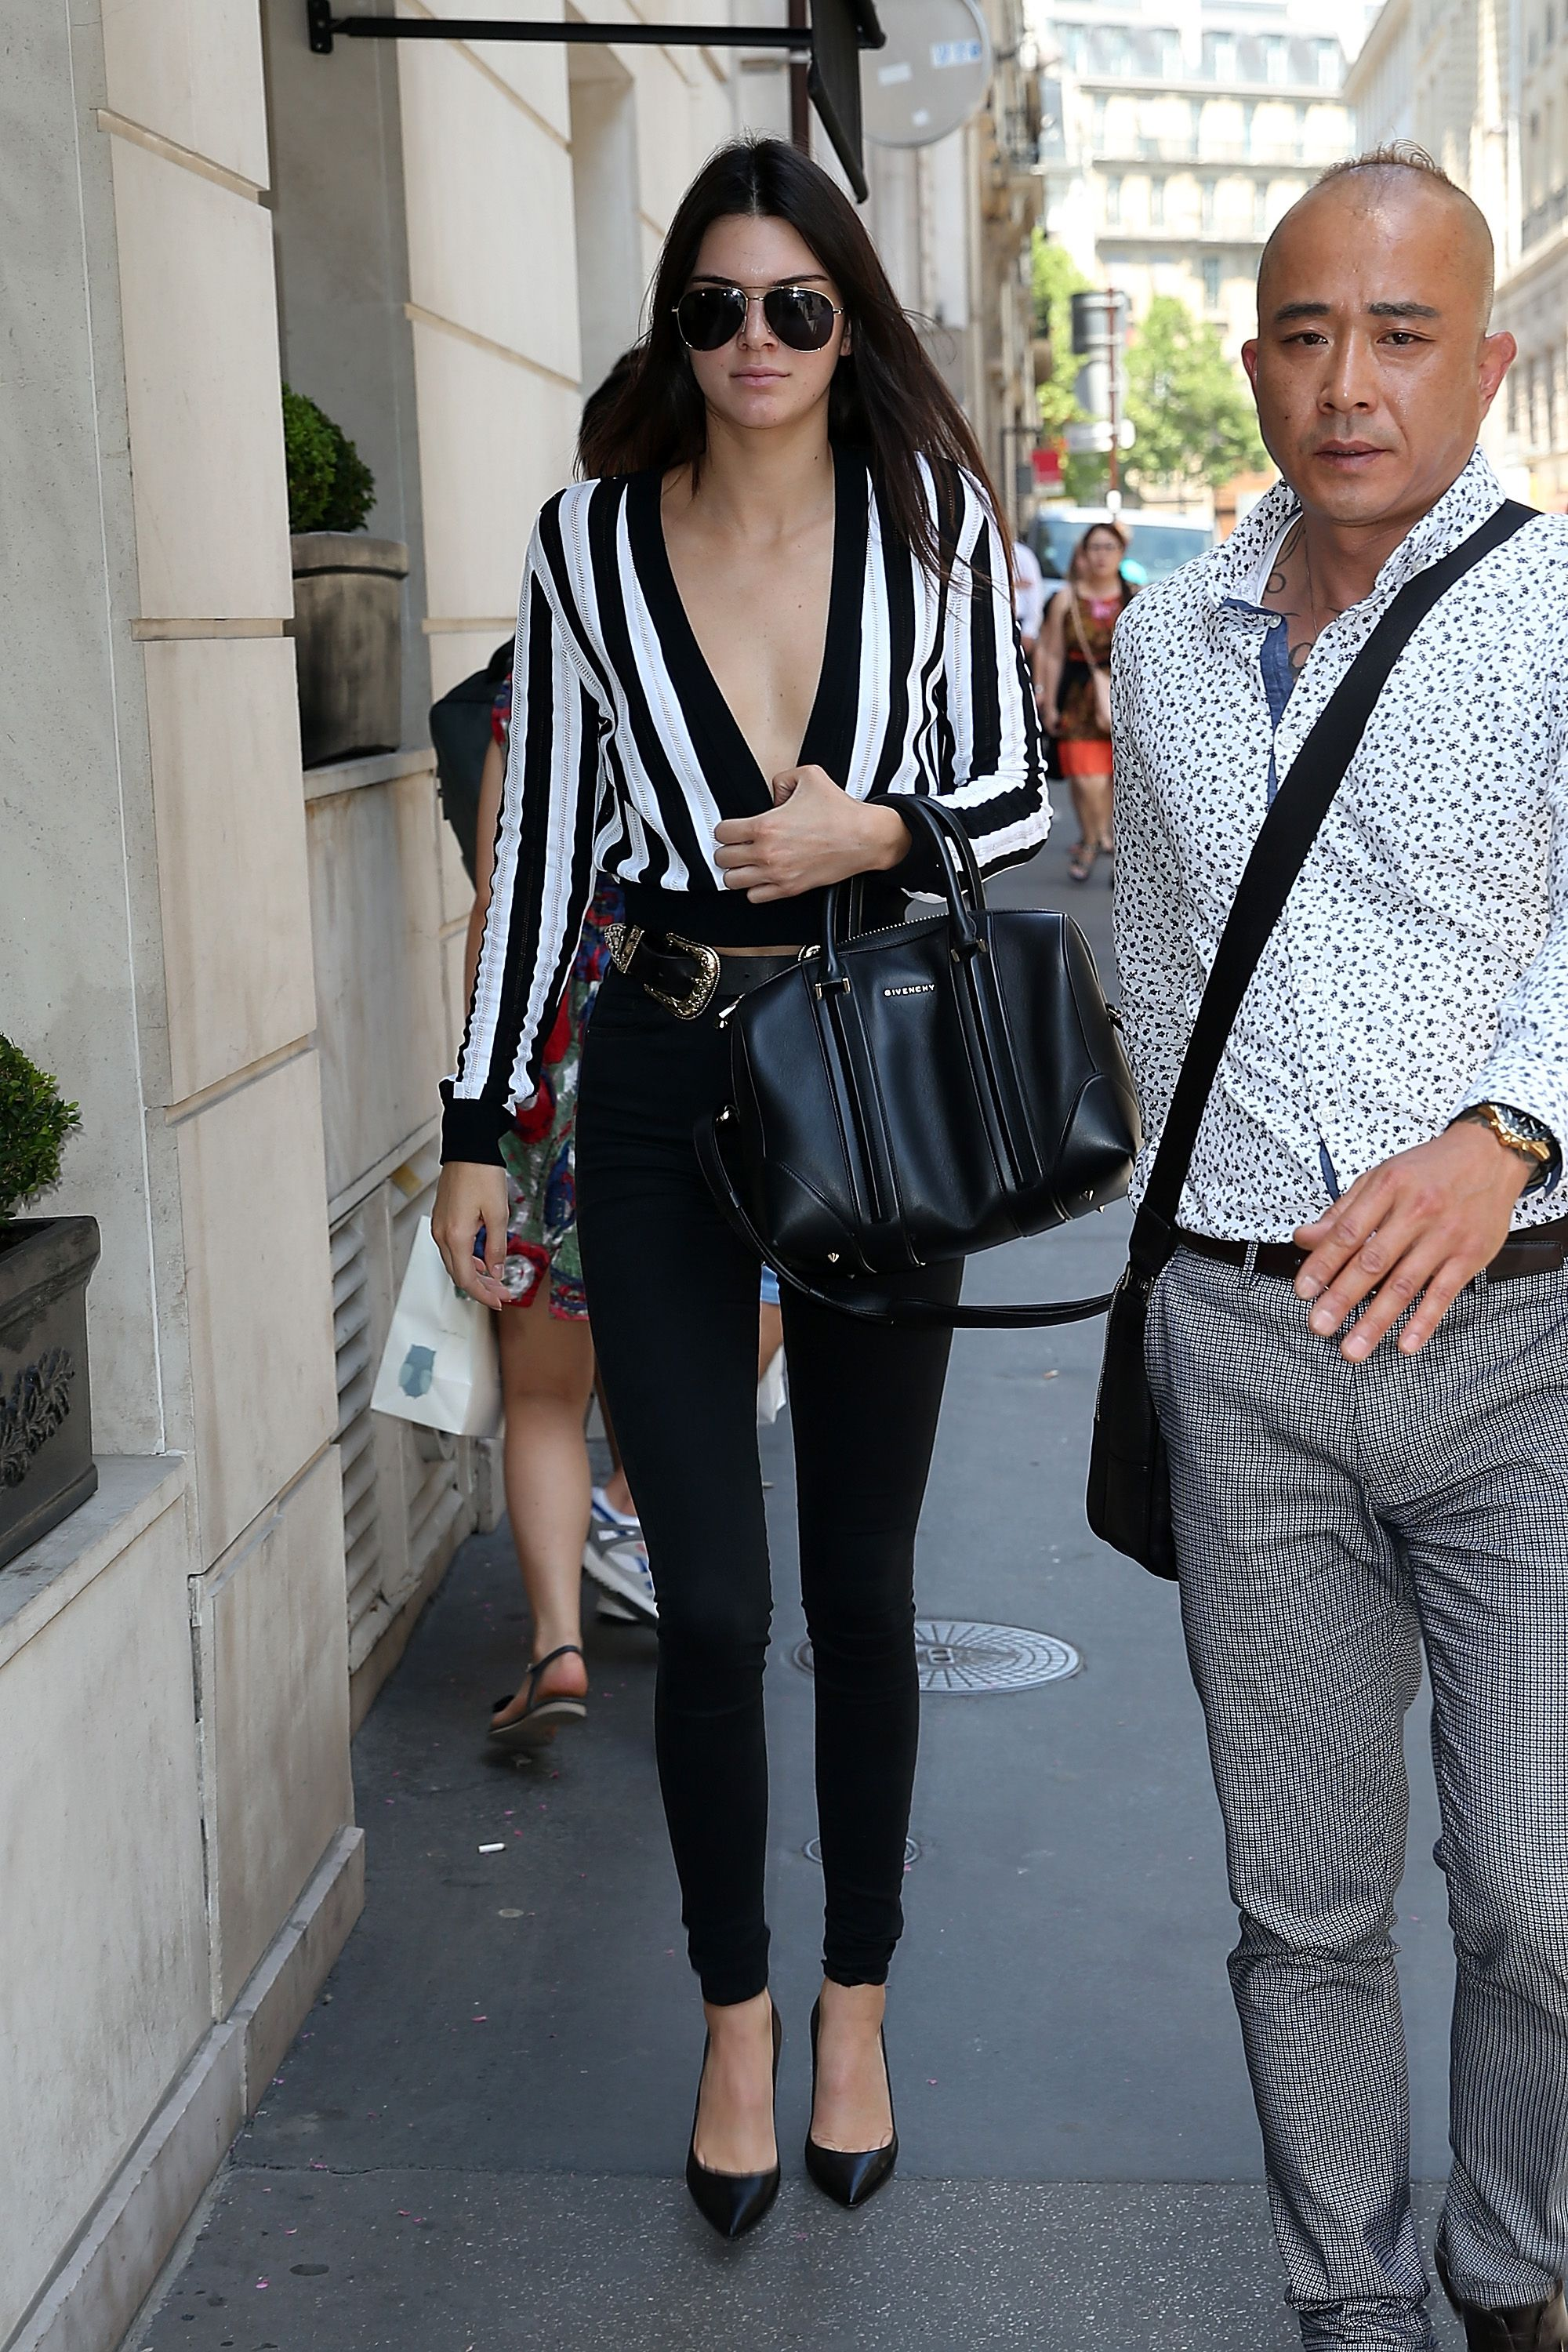 c89dadebe9be Kendall Jenner in Paris. ❤ her striped shirt! - ELLE.com